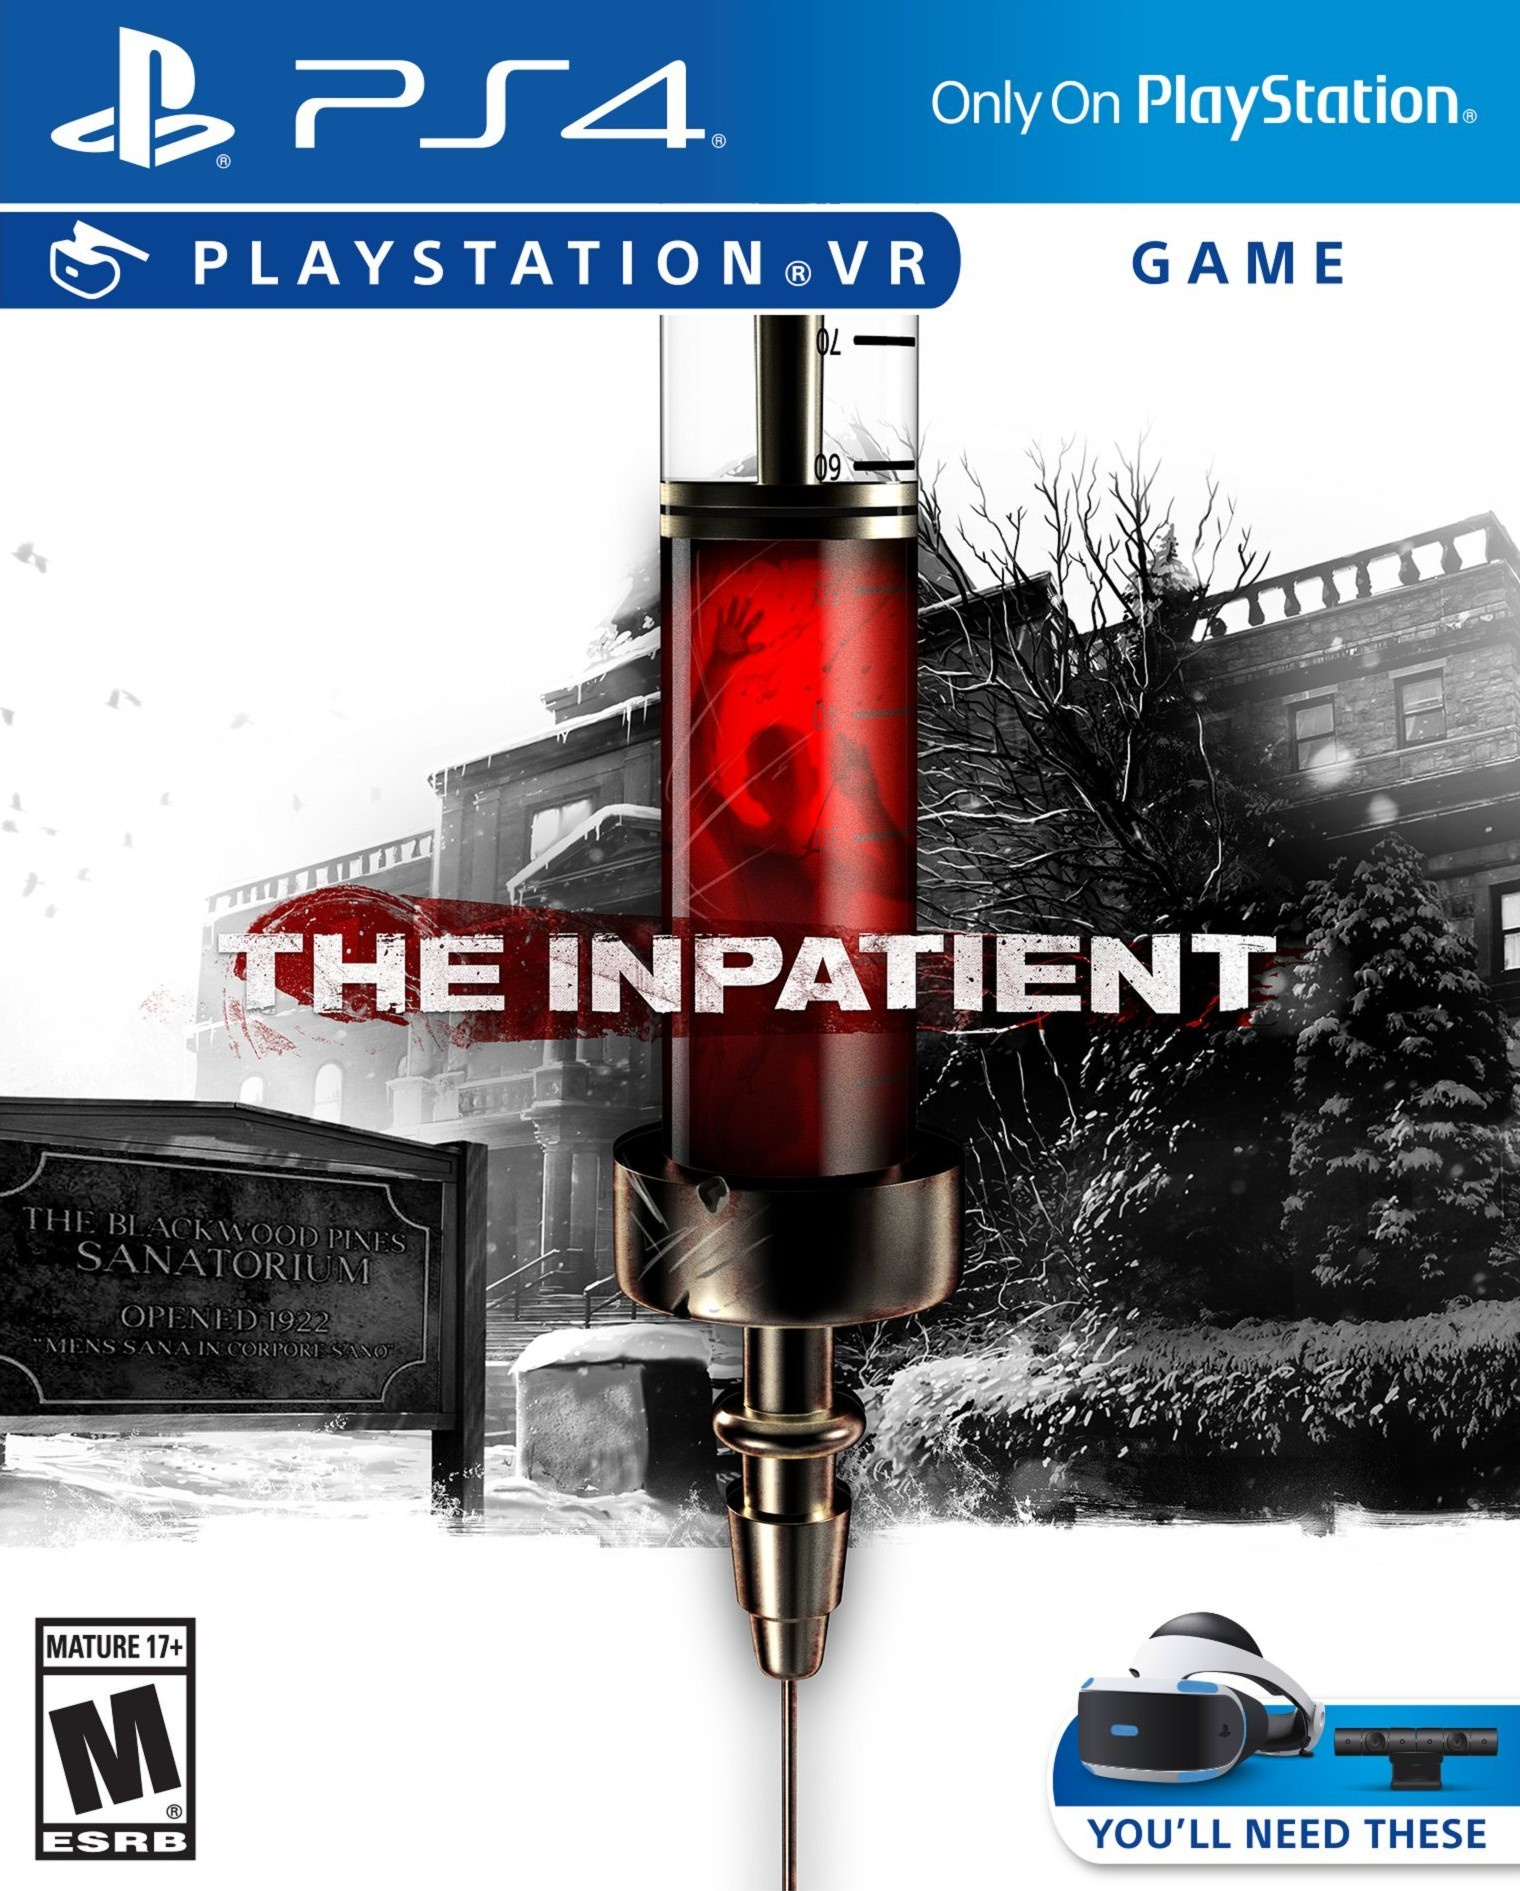 The Inpatient [PS4 Exclusive VR Only] 5.05 / 6.72 / 7.02 [EUR] (2018) [Русский] (v1.02)